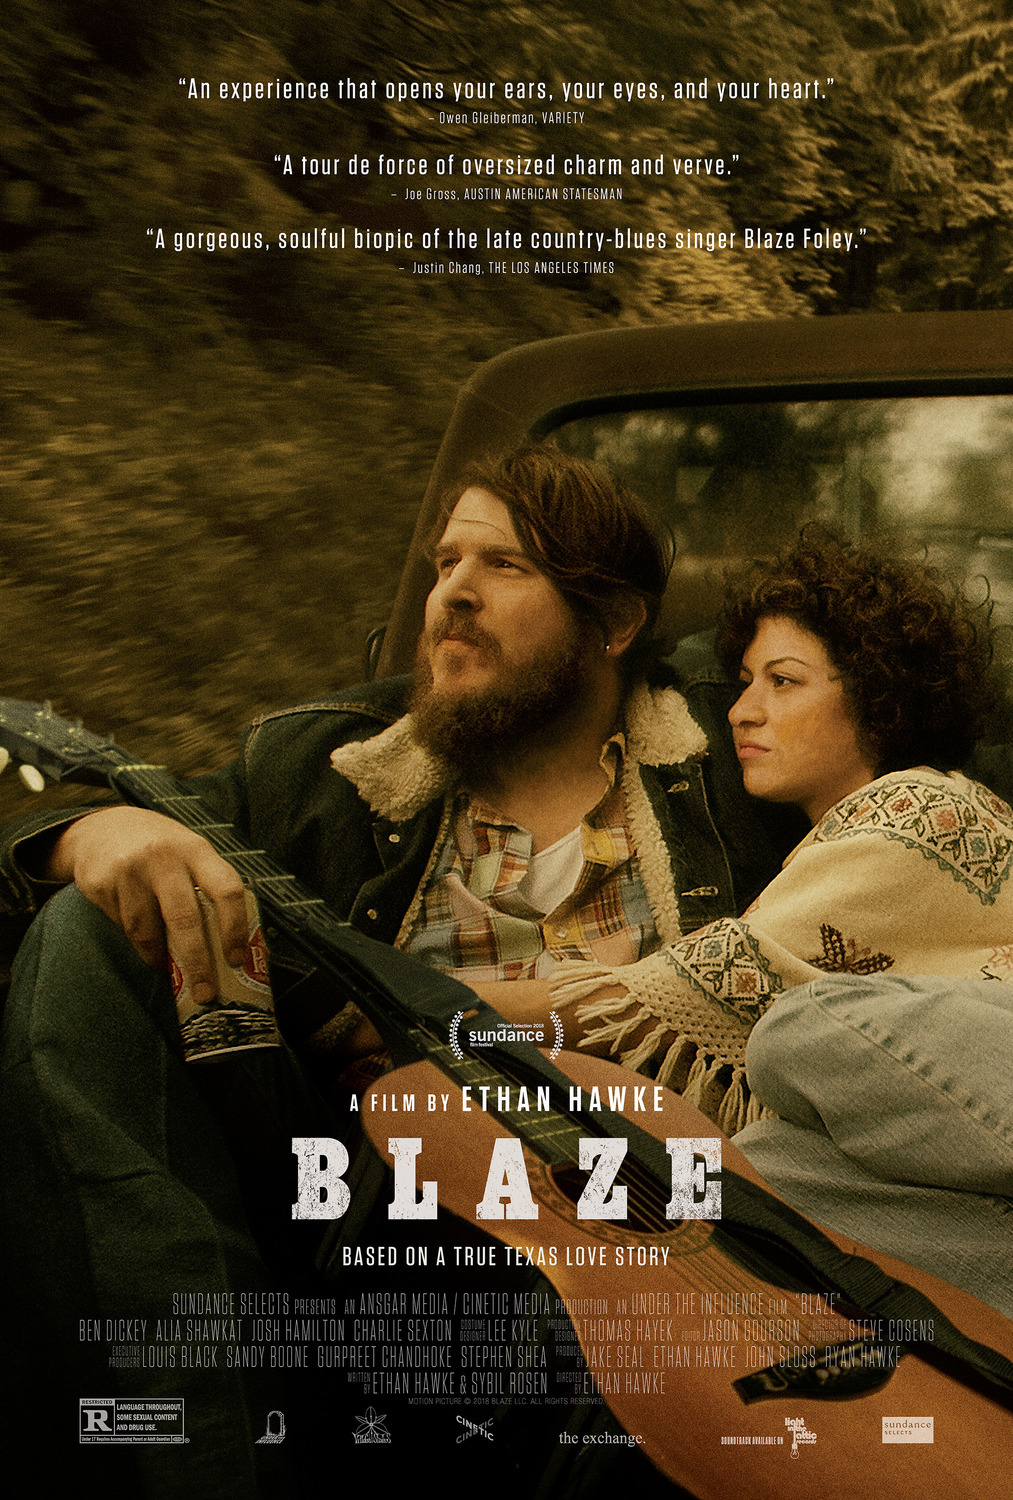 Blaze (2018) - Directed by: Ethan HawkeStarring: Ben Dickey, Alia Shawkat, Kris Kristofferson, Richard Linklater, Sam Rockwell, Steve Zahn, Charlie SextonRated: R for Language Throughout, Some Sexual Content and Drug UseRunning Time: 1 h 23 mTMM Score: 4.5 stars out of 5STRENGTHS: Unique Structure, Acting, Writing, DirectingWEAKNESSES: Pacing, Length